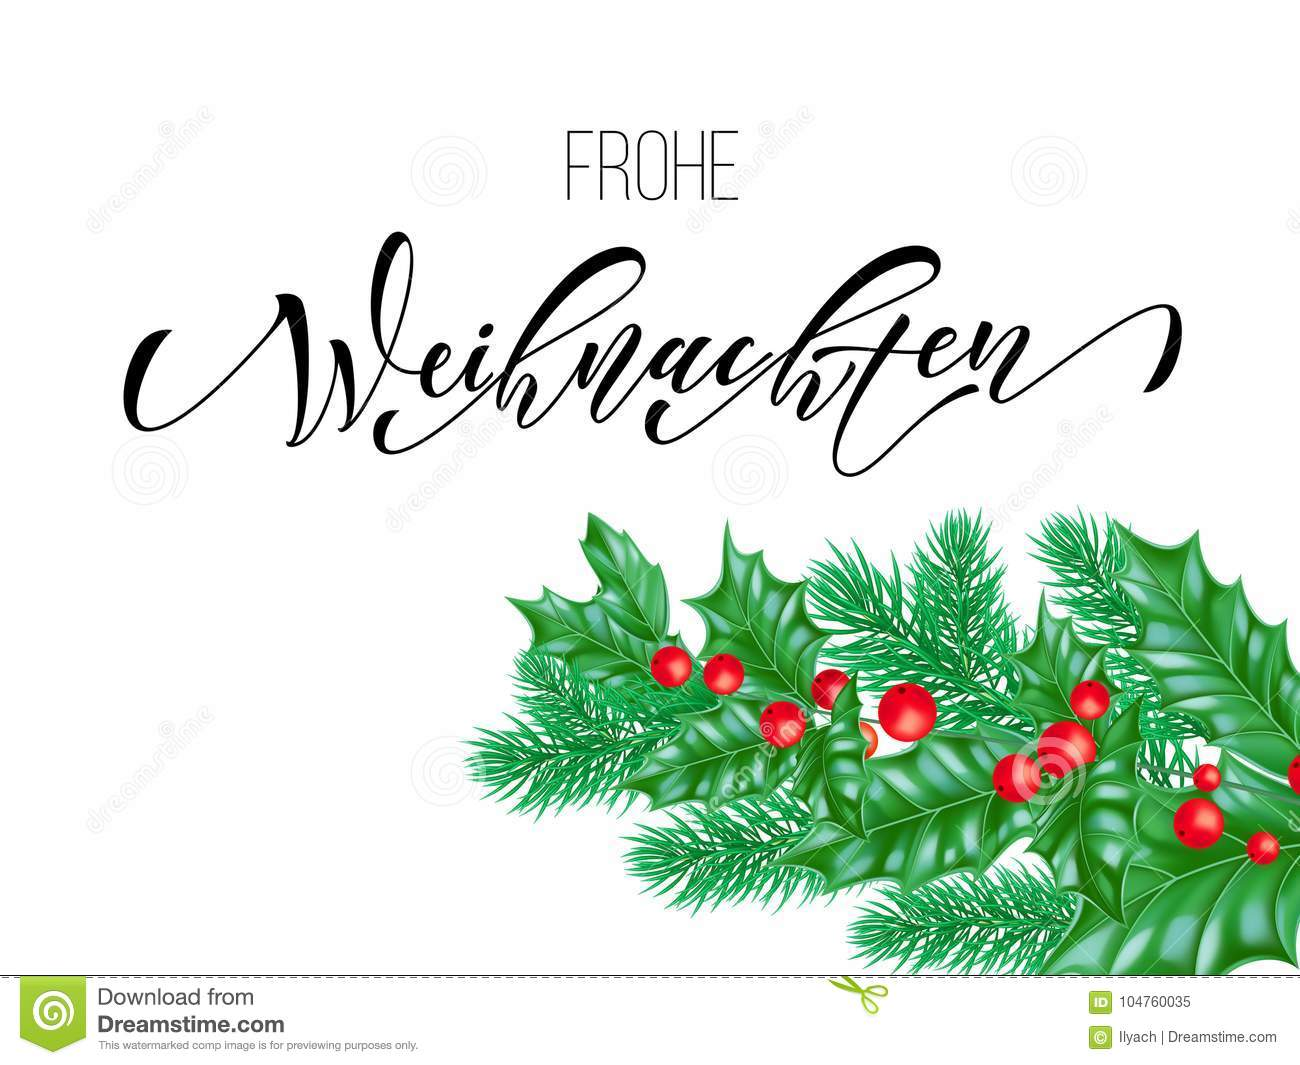 frohe weihnachten german merry christmas calligraphy font. Black Bedroom Furniture Sets. Home Design Ideas